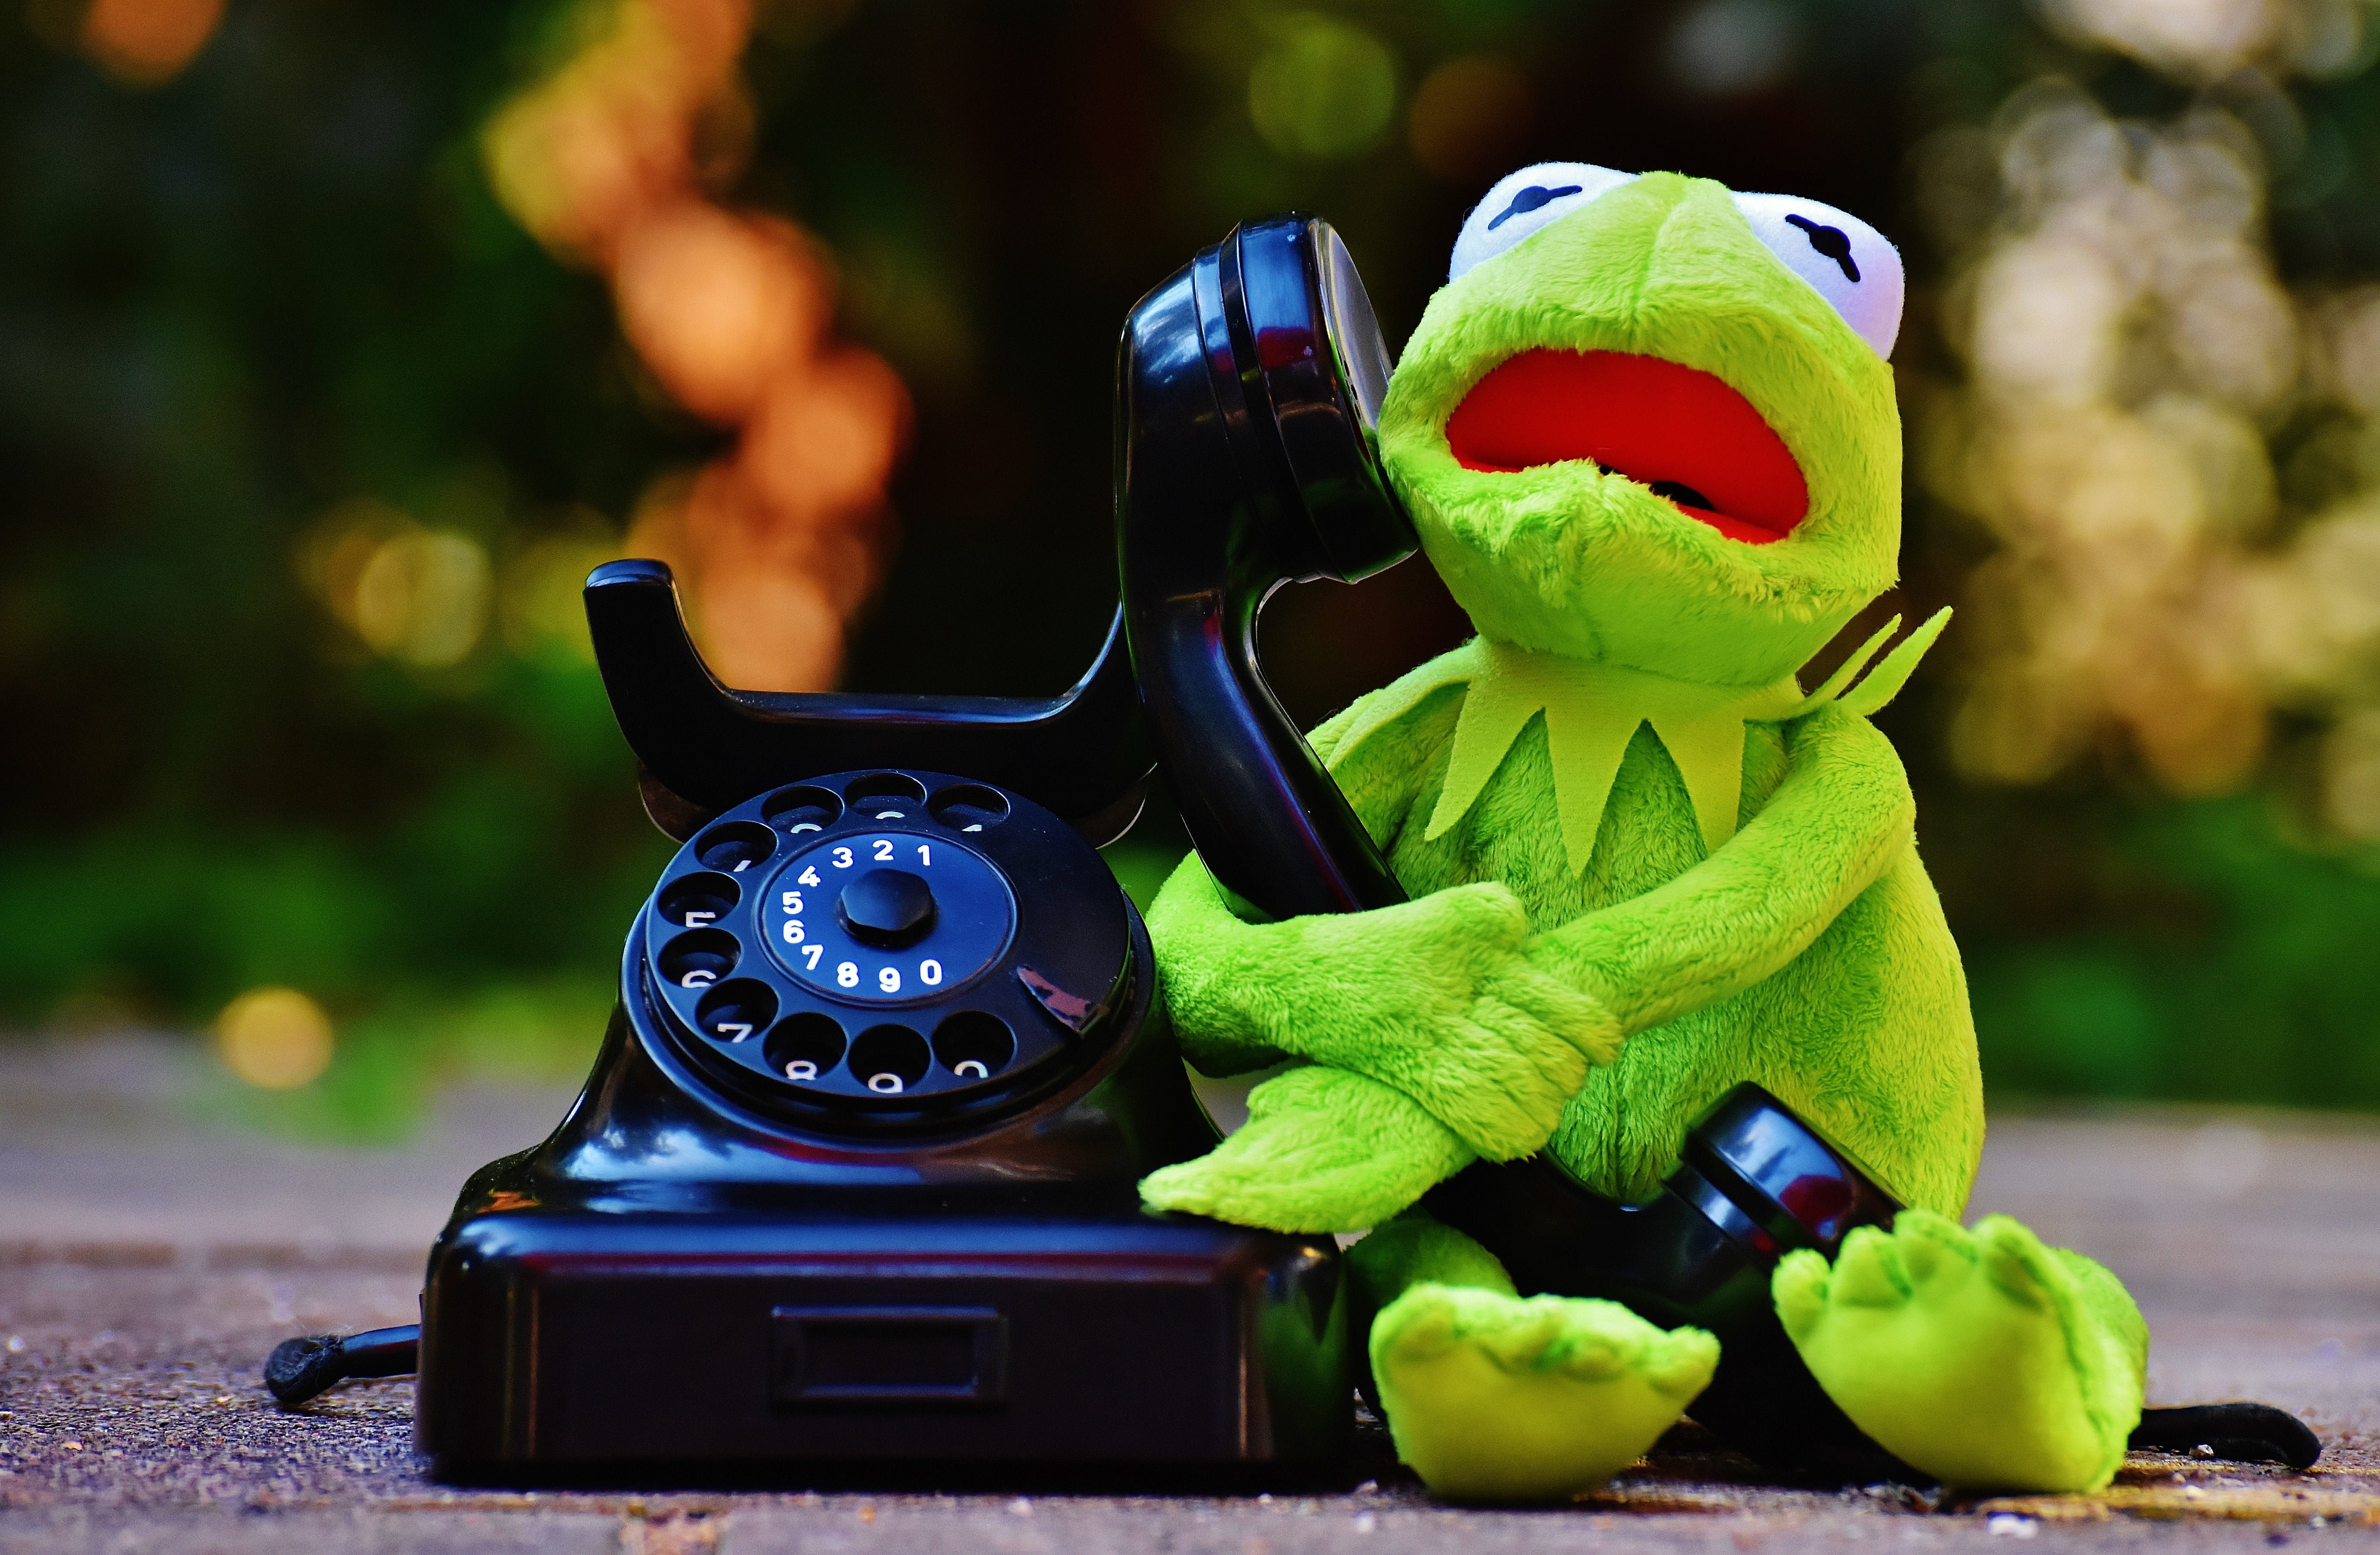 Free stock photo of animal, phone, funny, frog